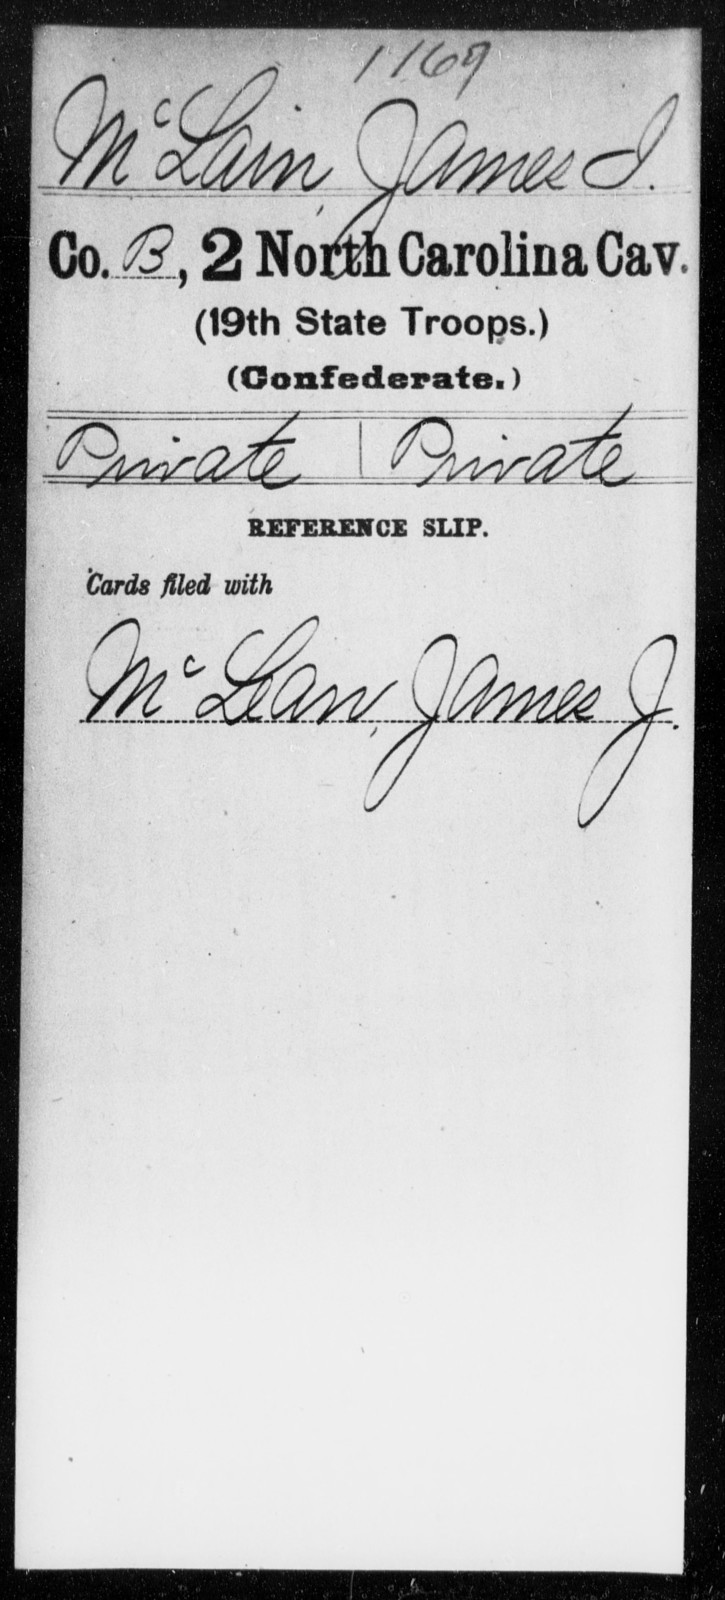 McLain, James I - Second Cavalry (19th State Troops)